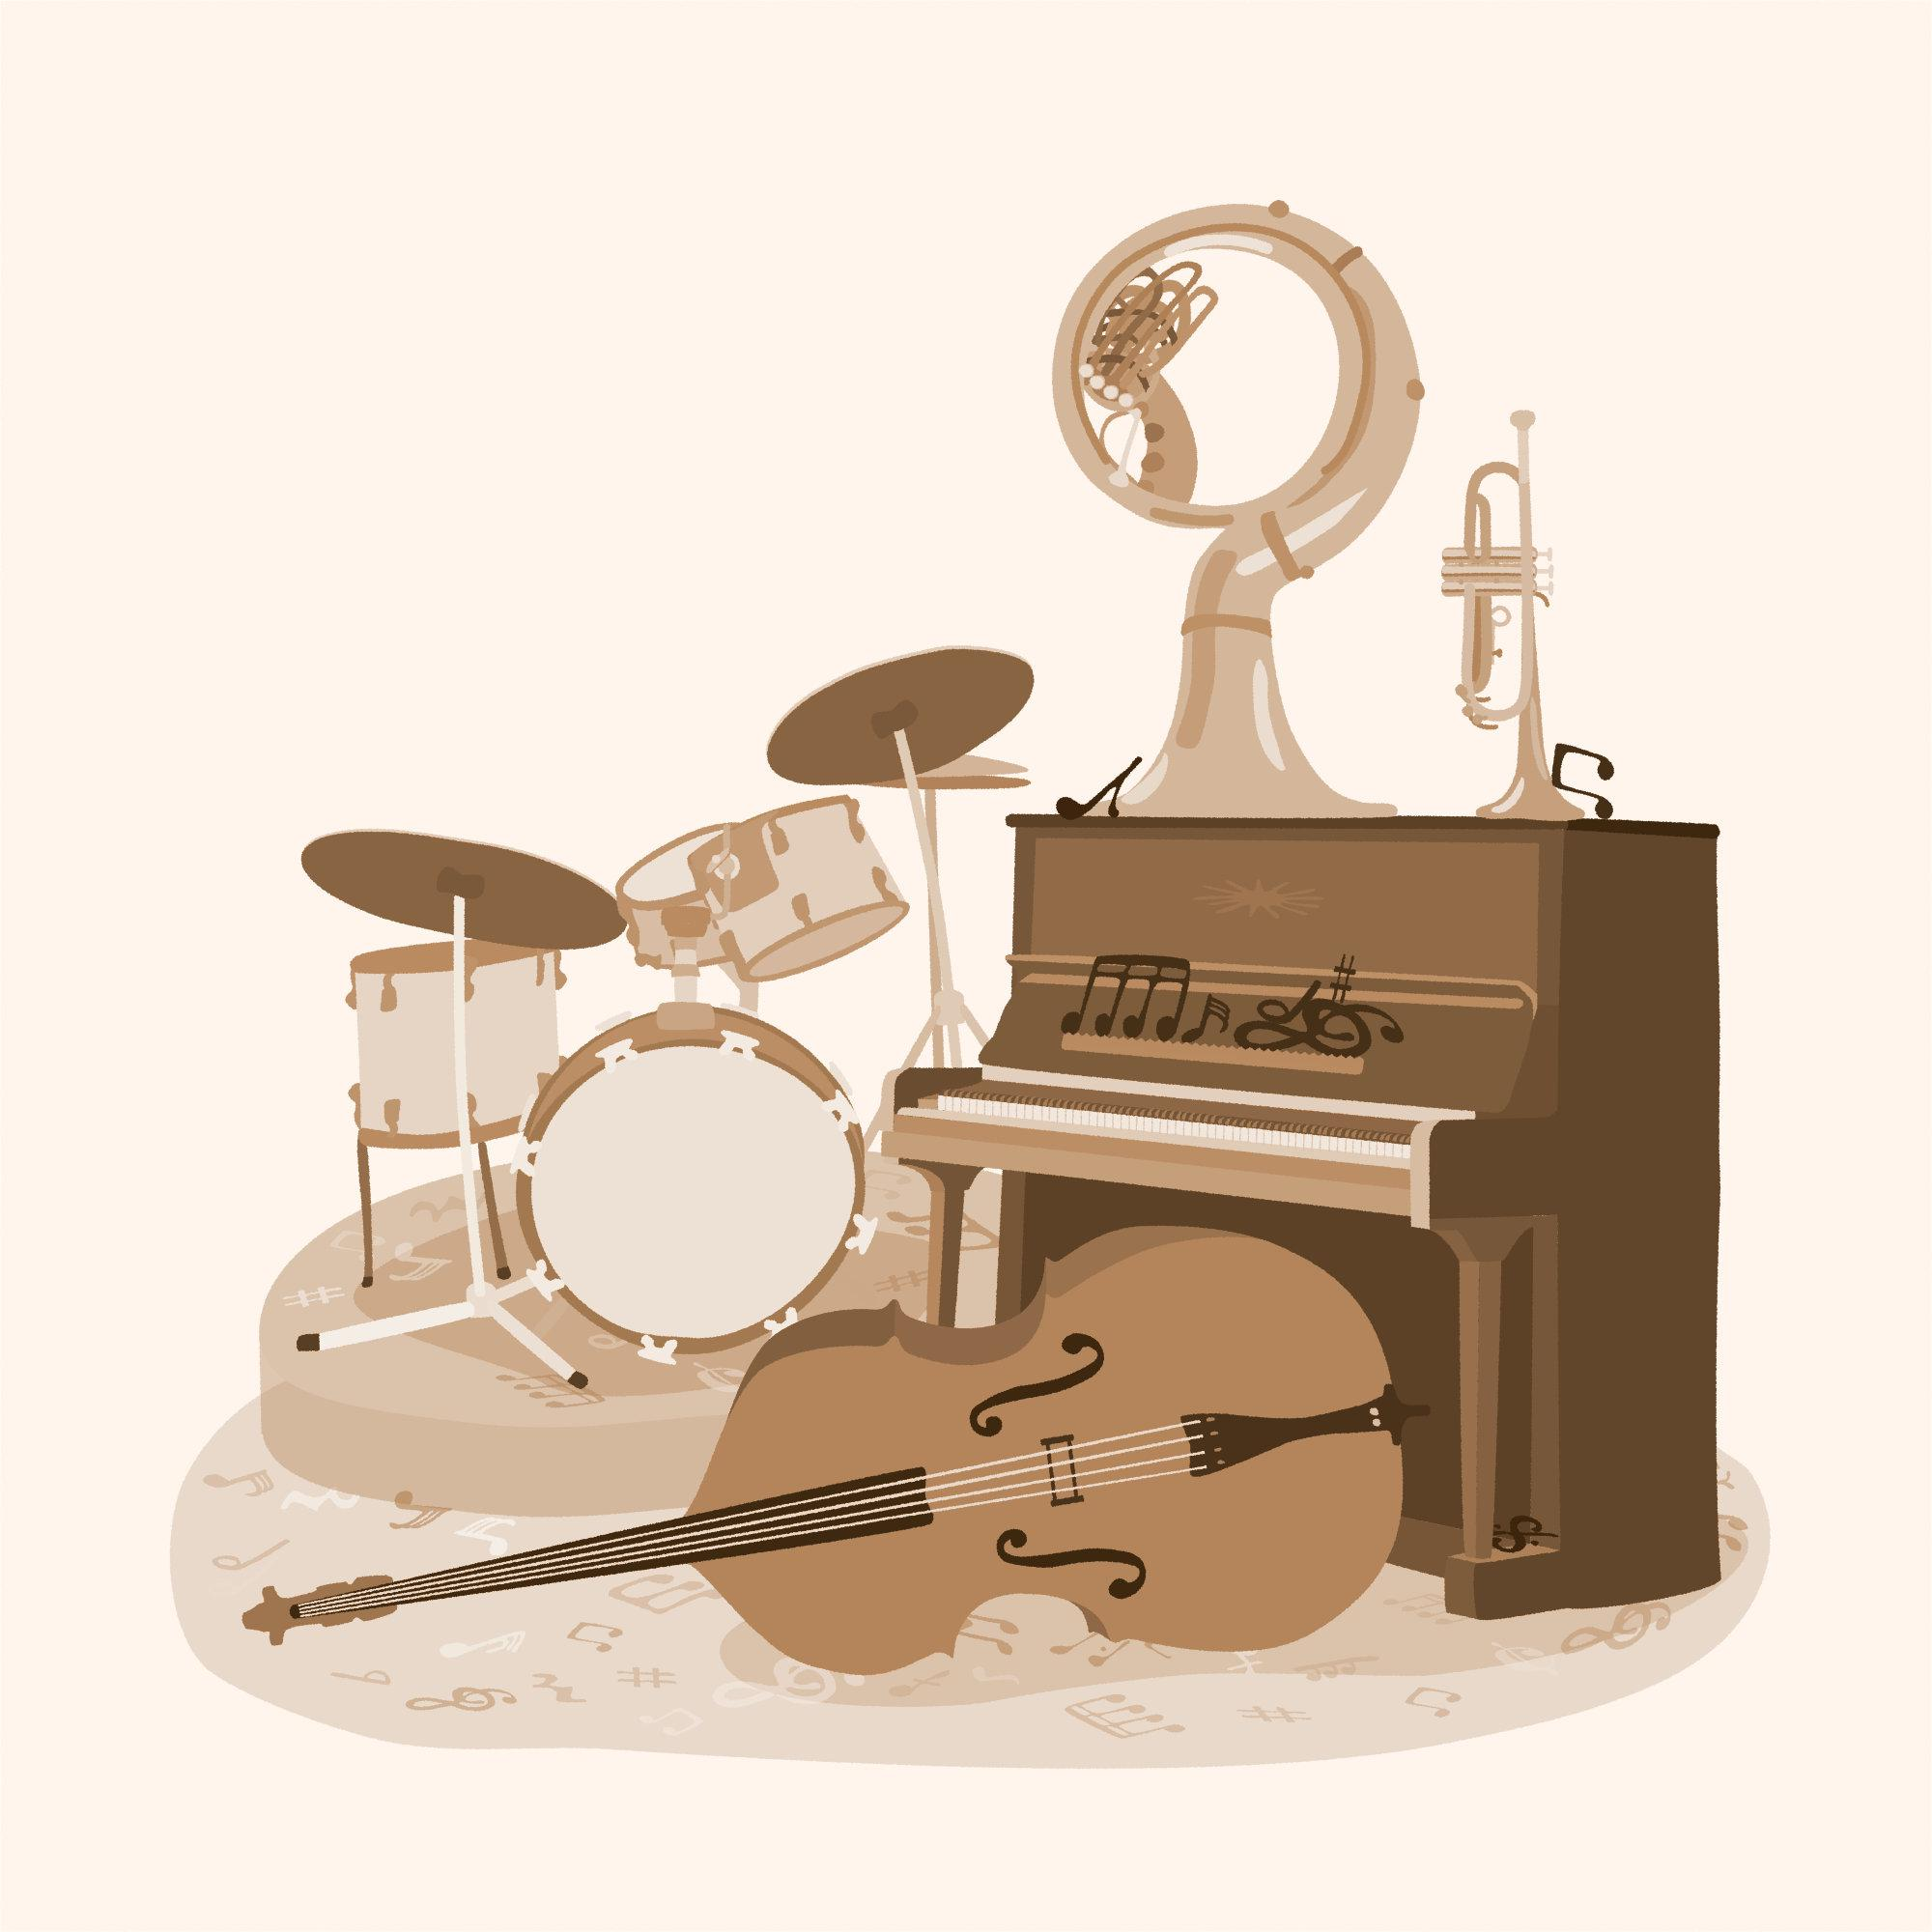 Image shows band instruments:   a drum kit, double bass, piano, sousaphone and trumpet.